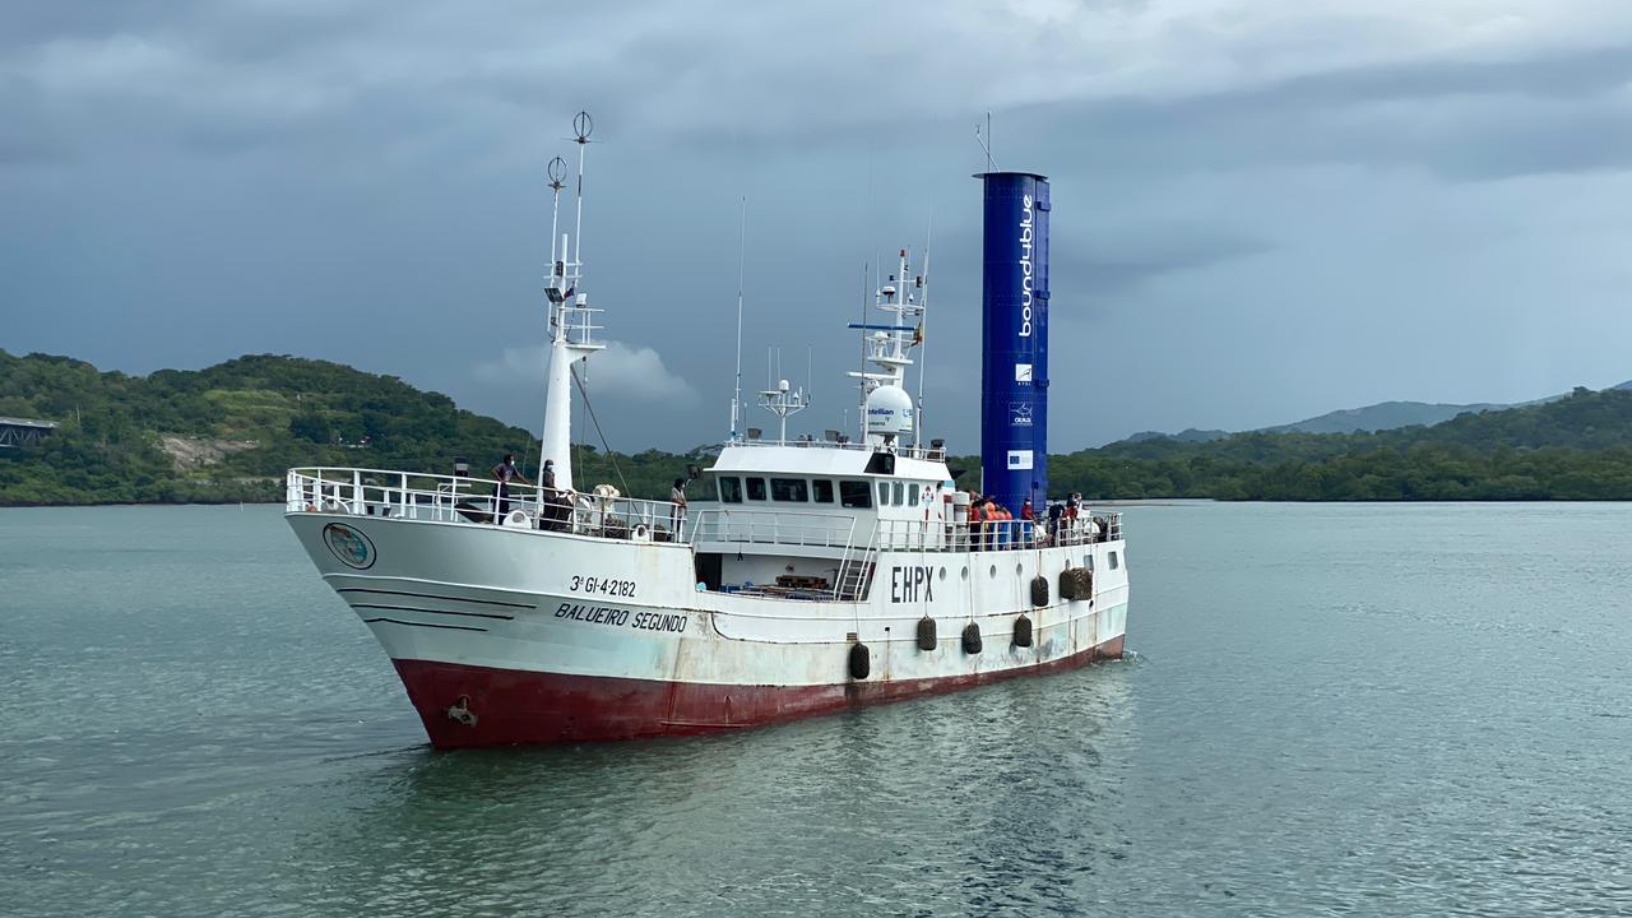 Bound4Blue's aeronautical tech propels first sustainable shipping vessel in the Pacific